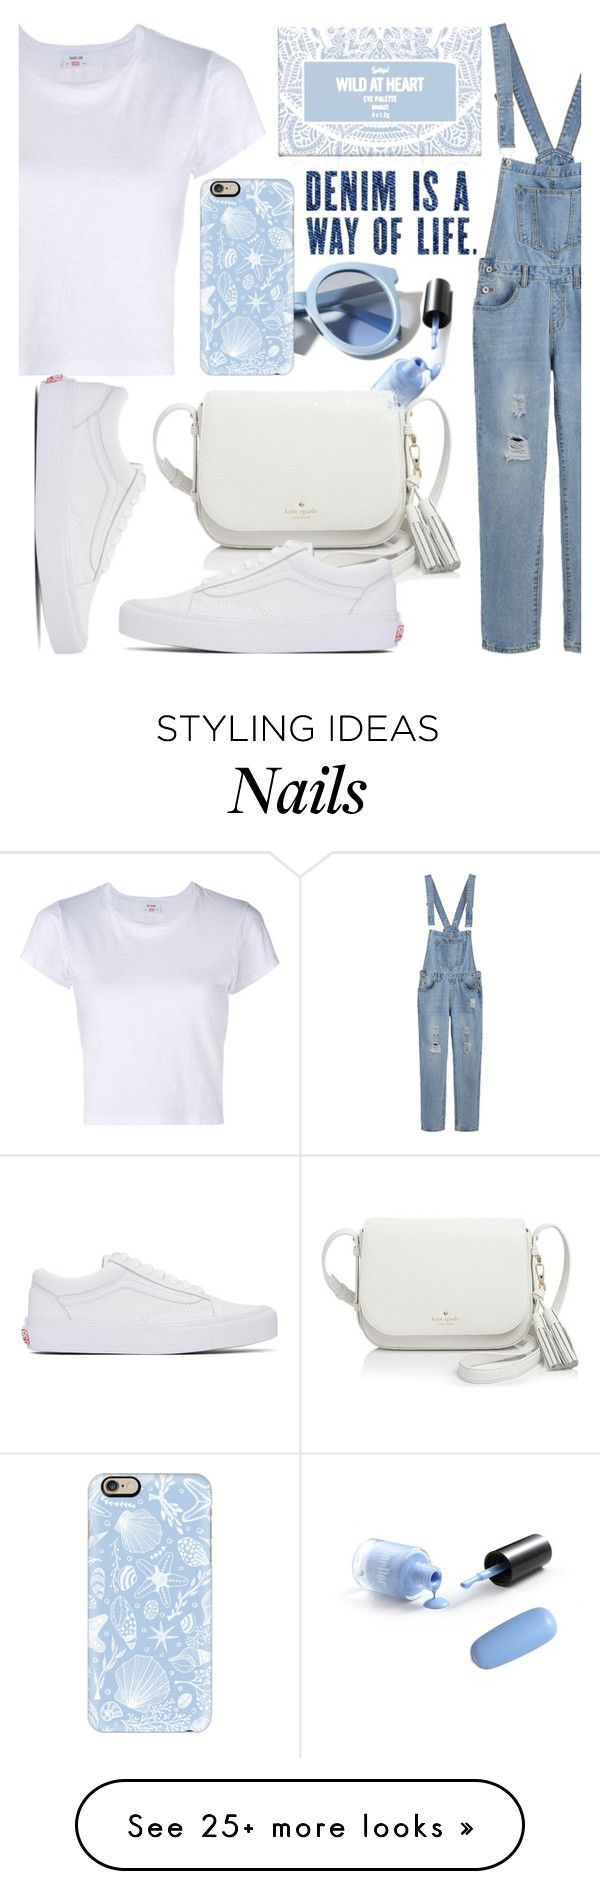 """Way of life"" by syvkirah on Polyvore featuring Pinko, RE/DONE, Casetify, Kate Spade and Vans"